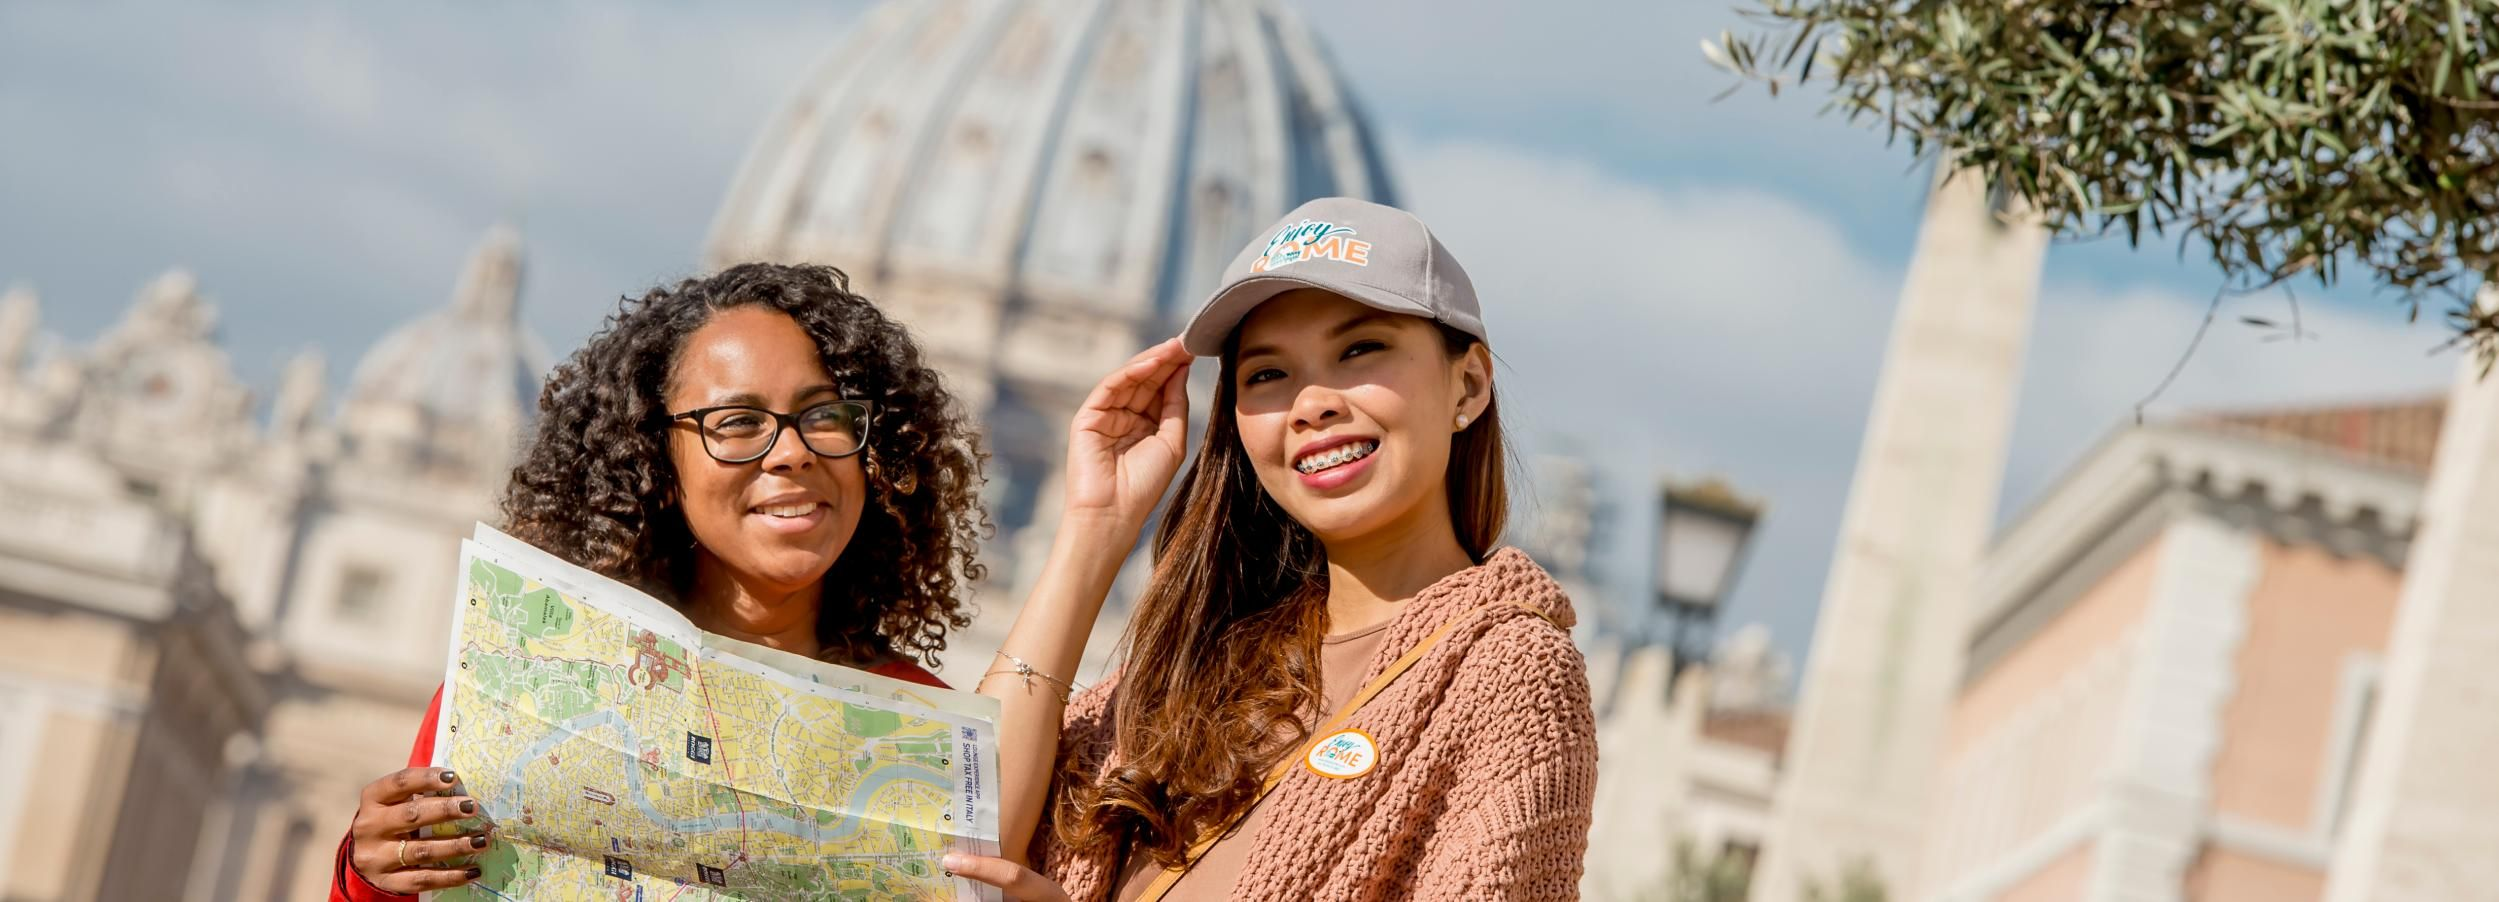 Hosted Fast-Track Ticket Vatican Museums and Sistine Chapel